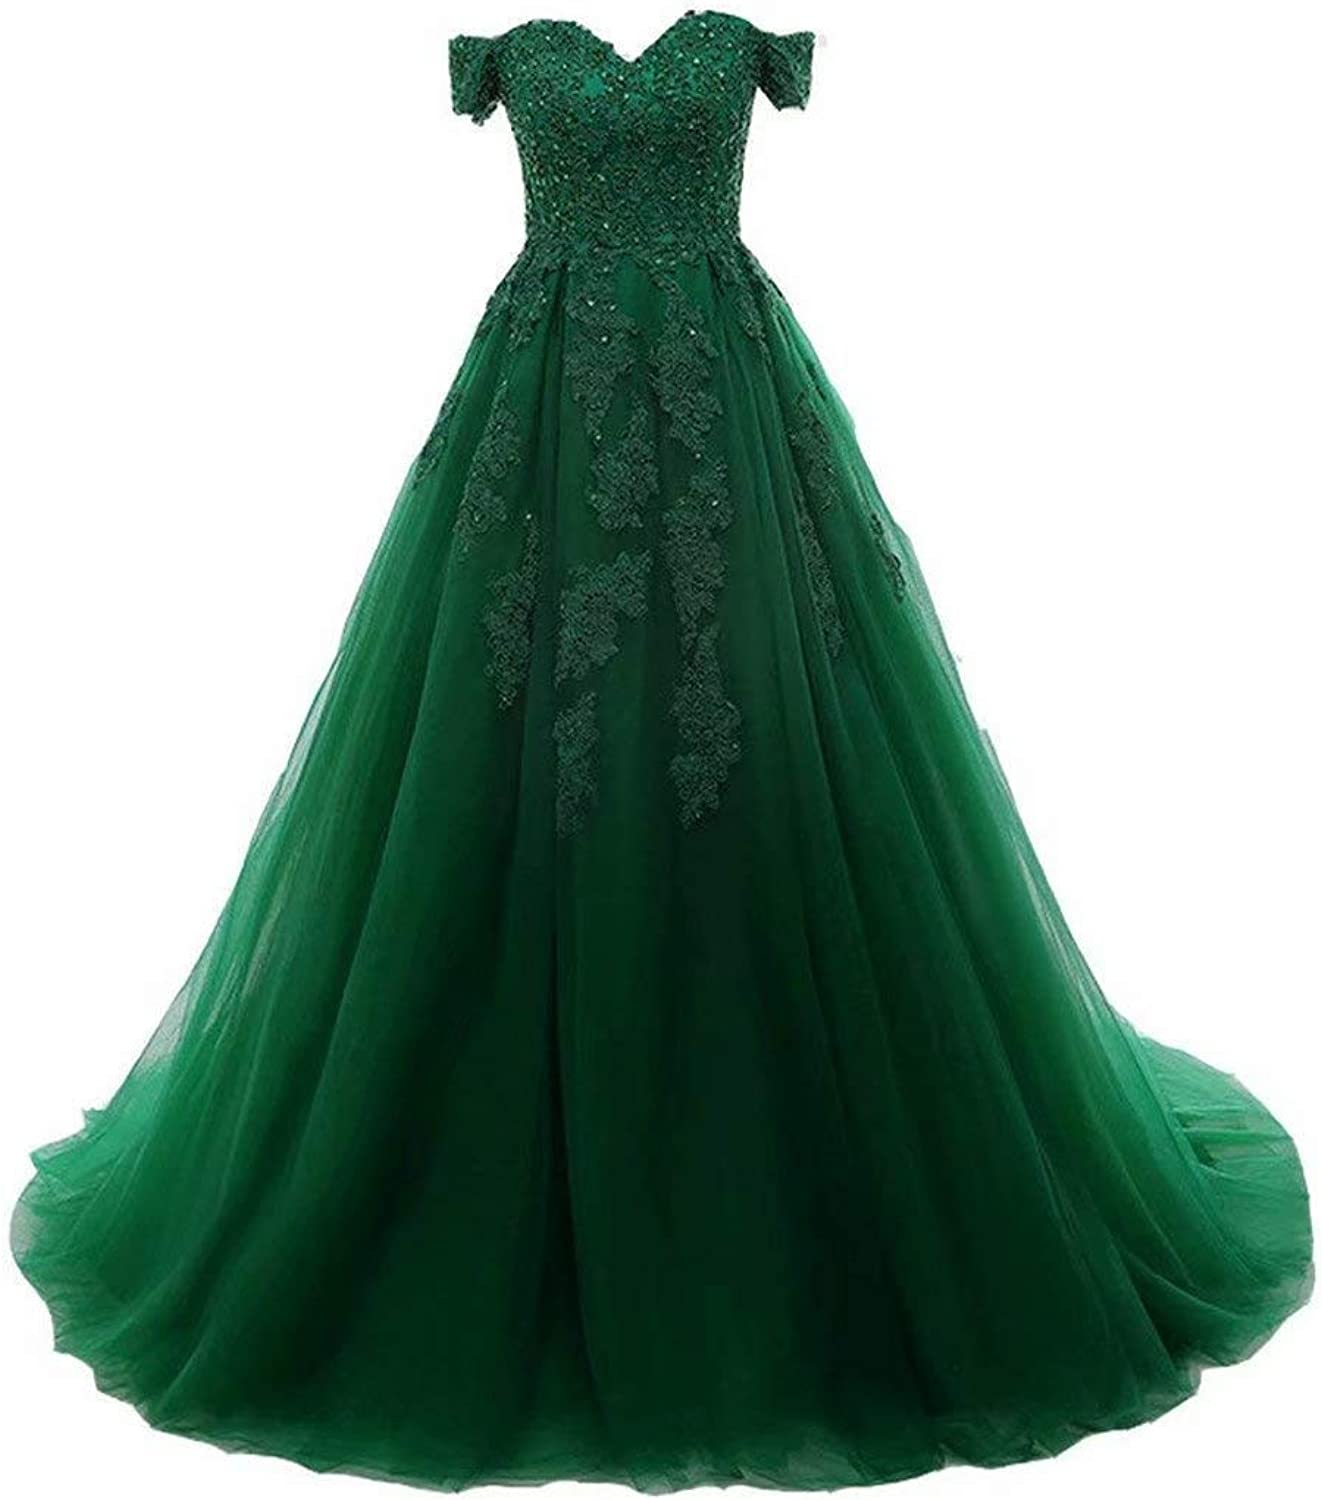 EEFZL Women's Beaded Lace Appliques Prom Dresses Tulle Evening Ball Gowns